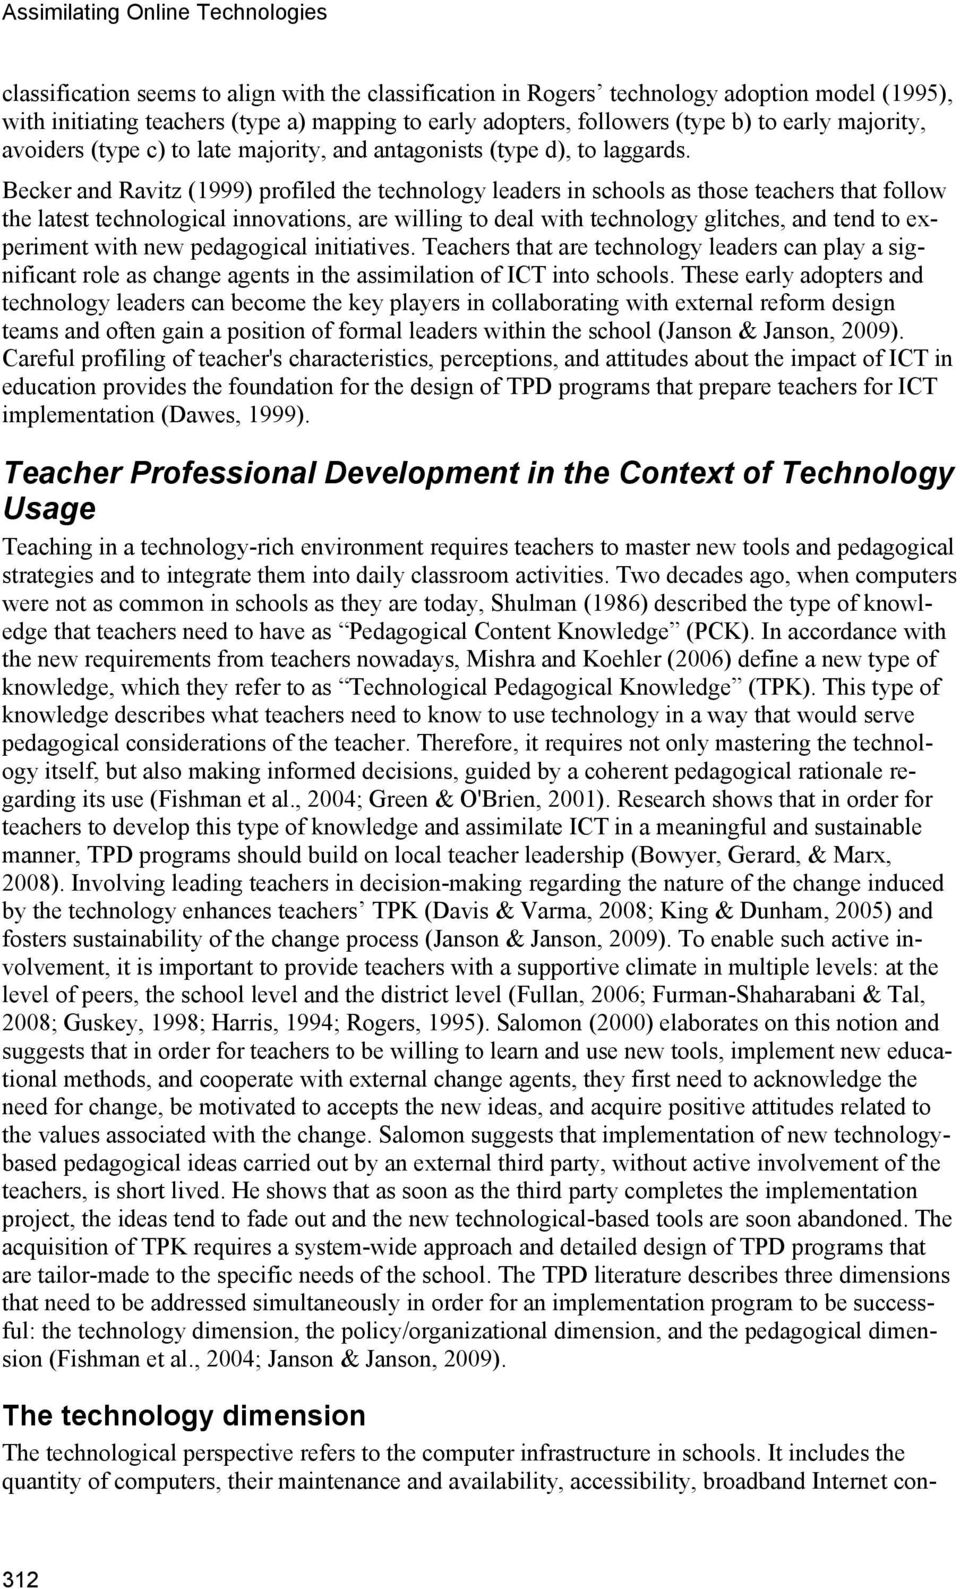 Becker and Ravitz (1999) profiled the technology leaders in schools as those teachers that follow the latest technological innovations, are willing to deal with technology glitches, and tend to